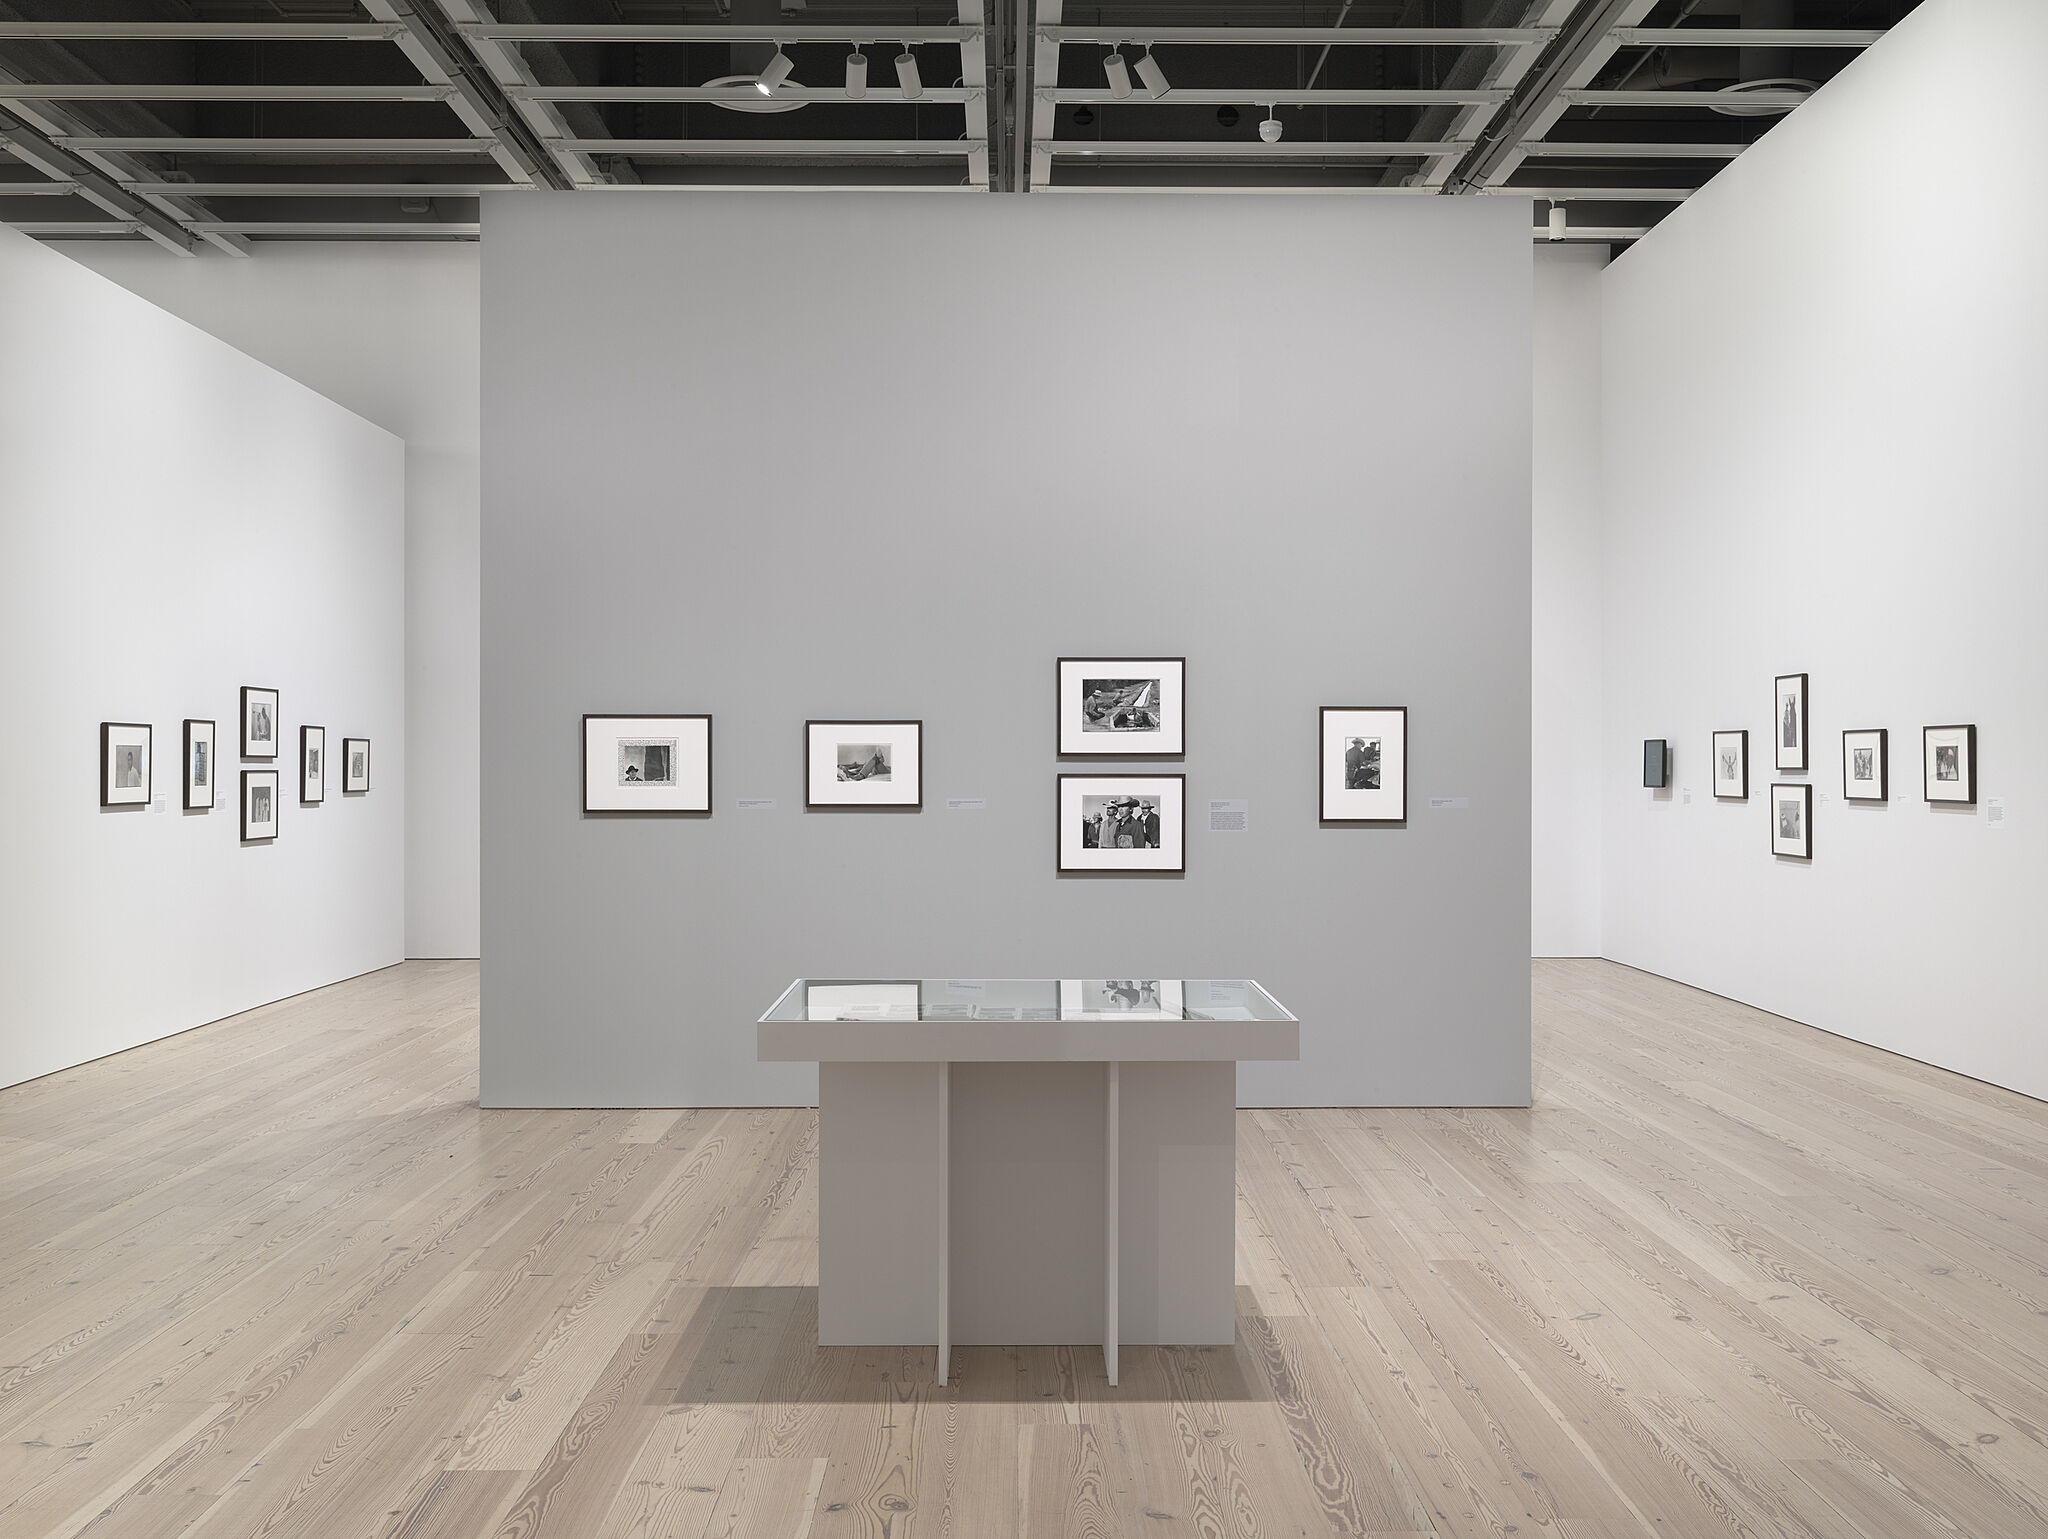 Photos on the wall in a gallery during an exhibition by Danny Lyon.